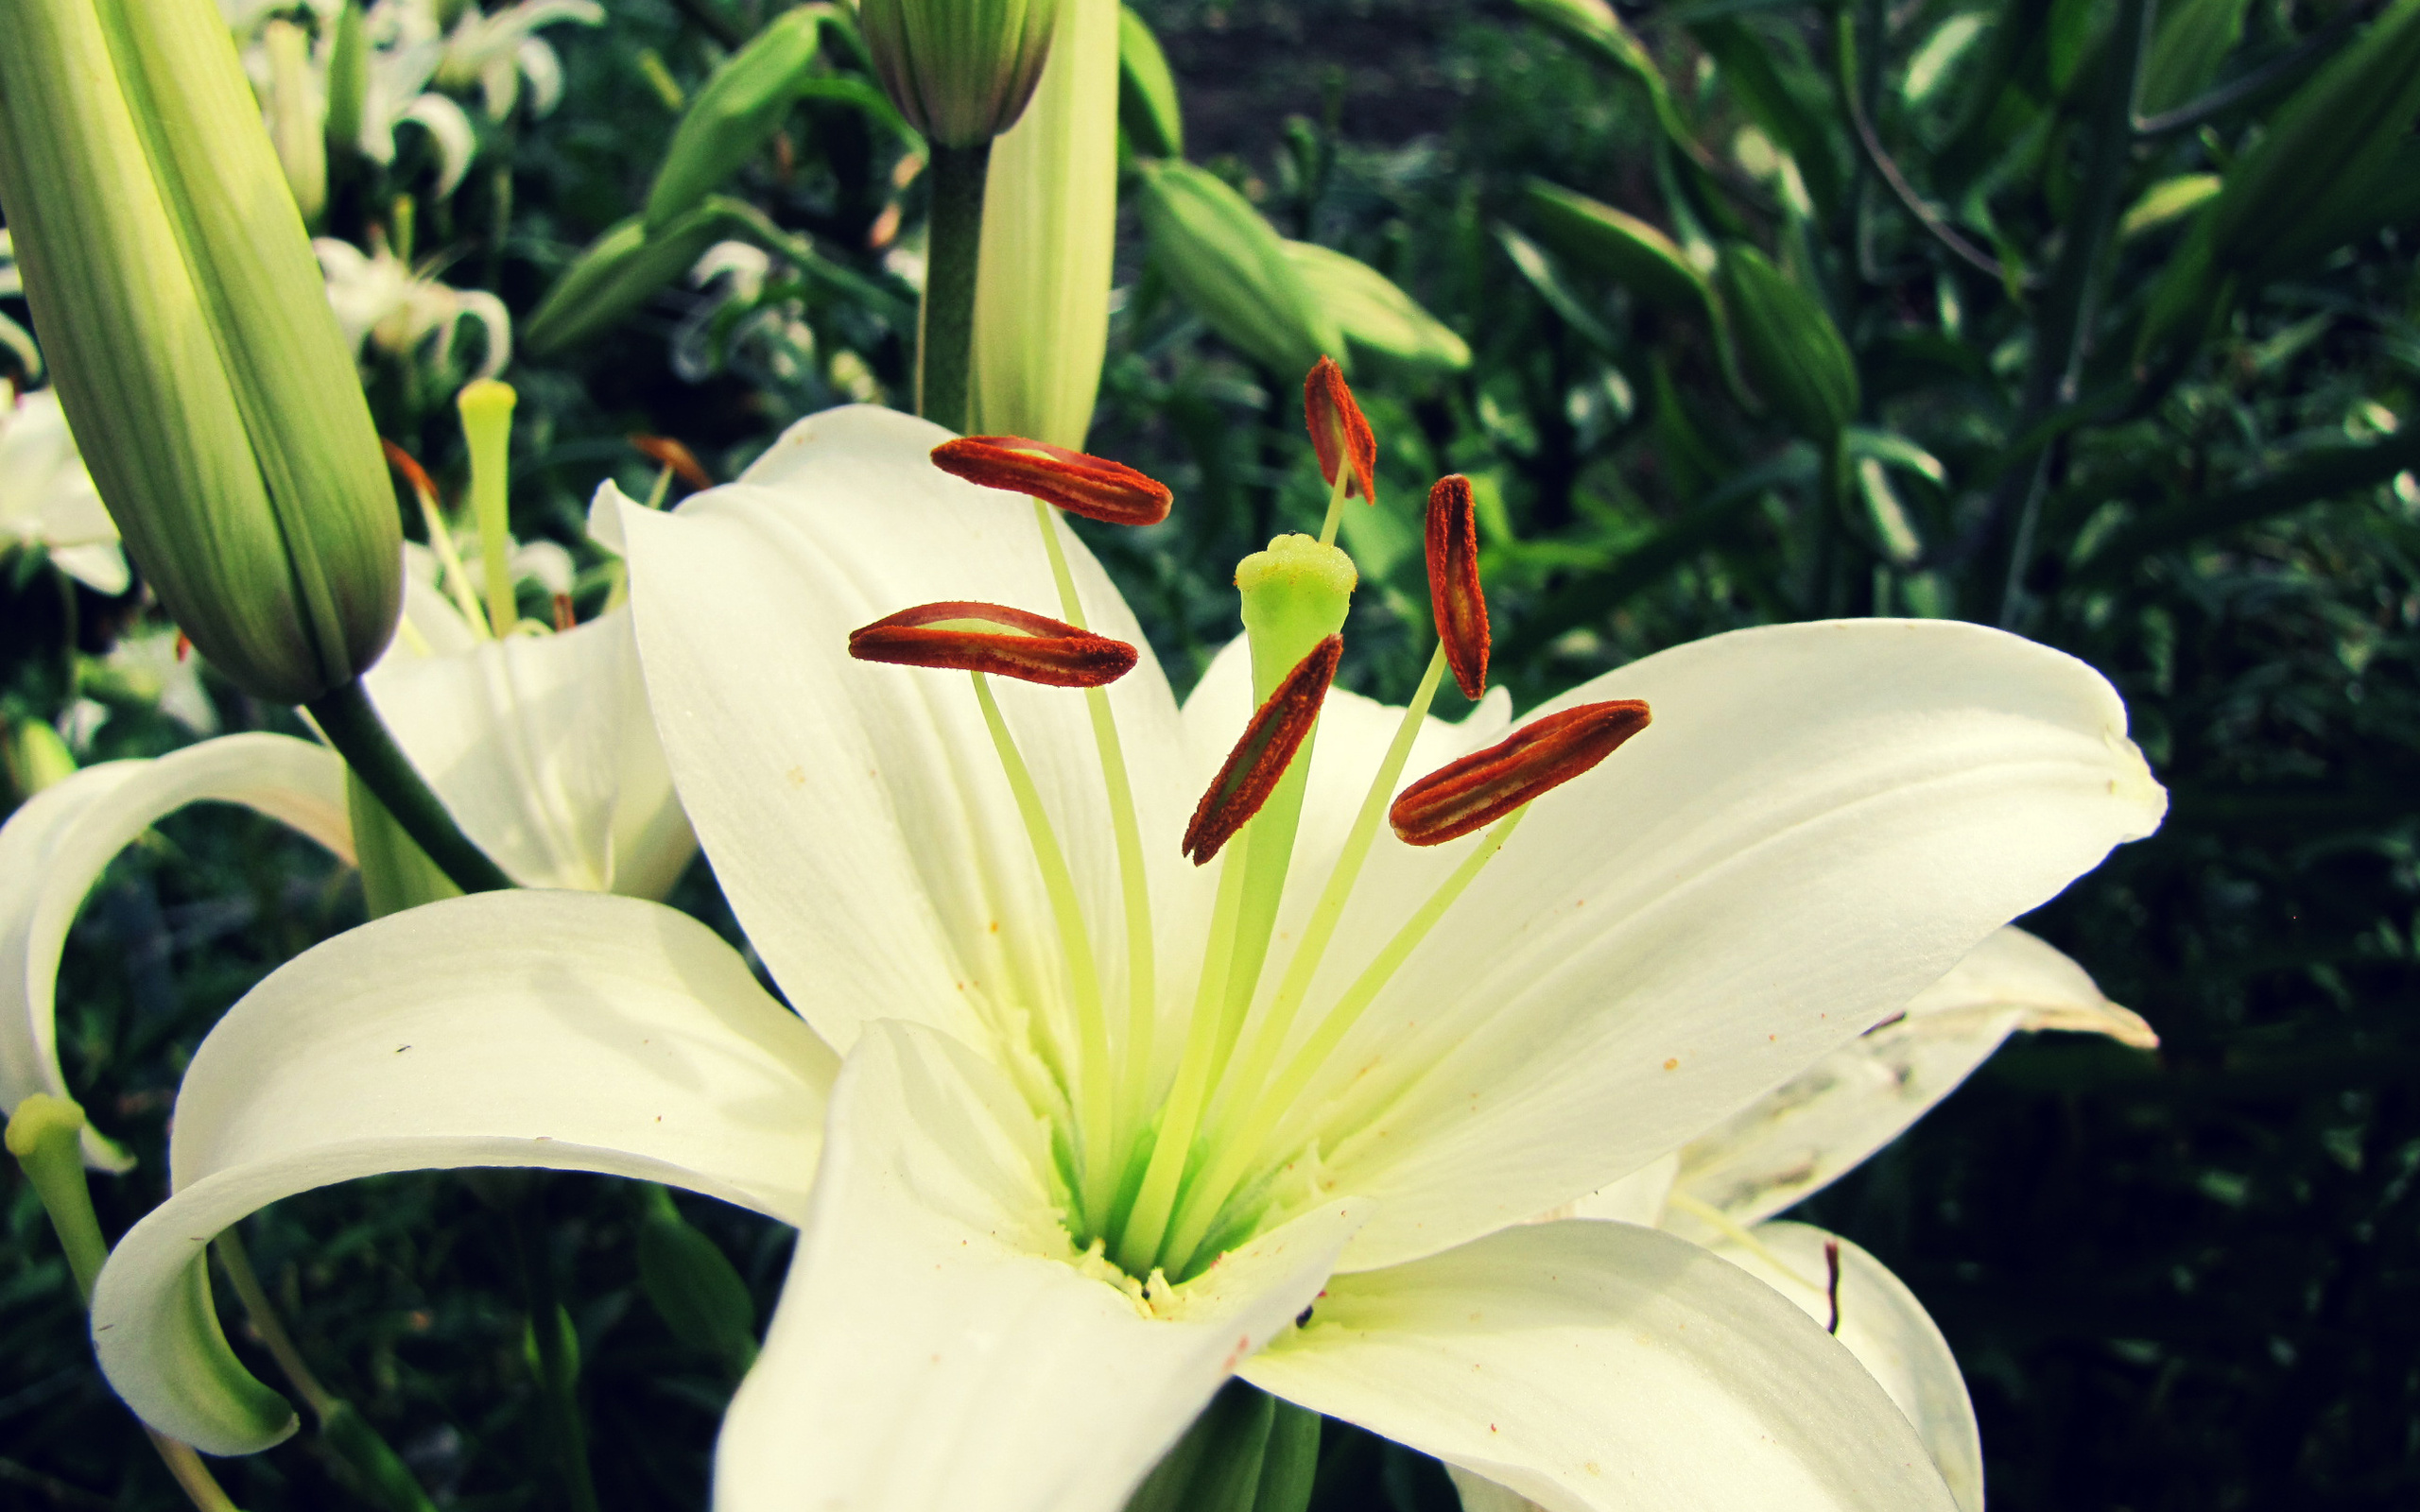 White Lily Flower Wallpaper 50637 2560x1600px